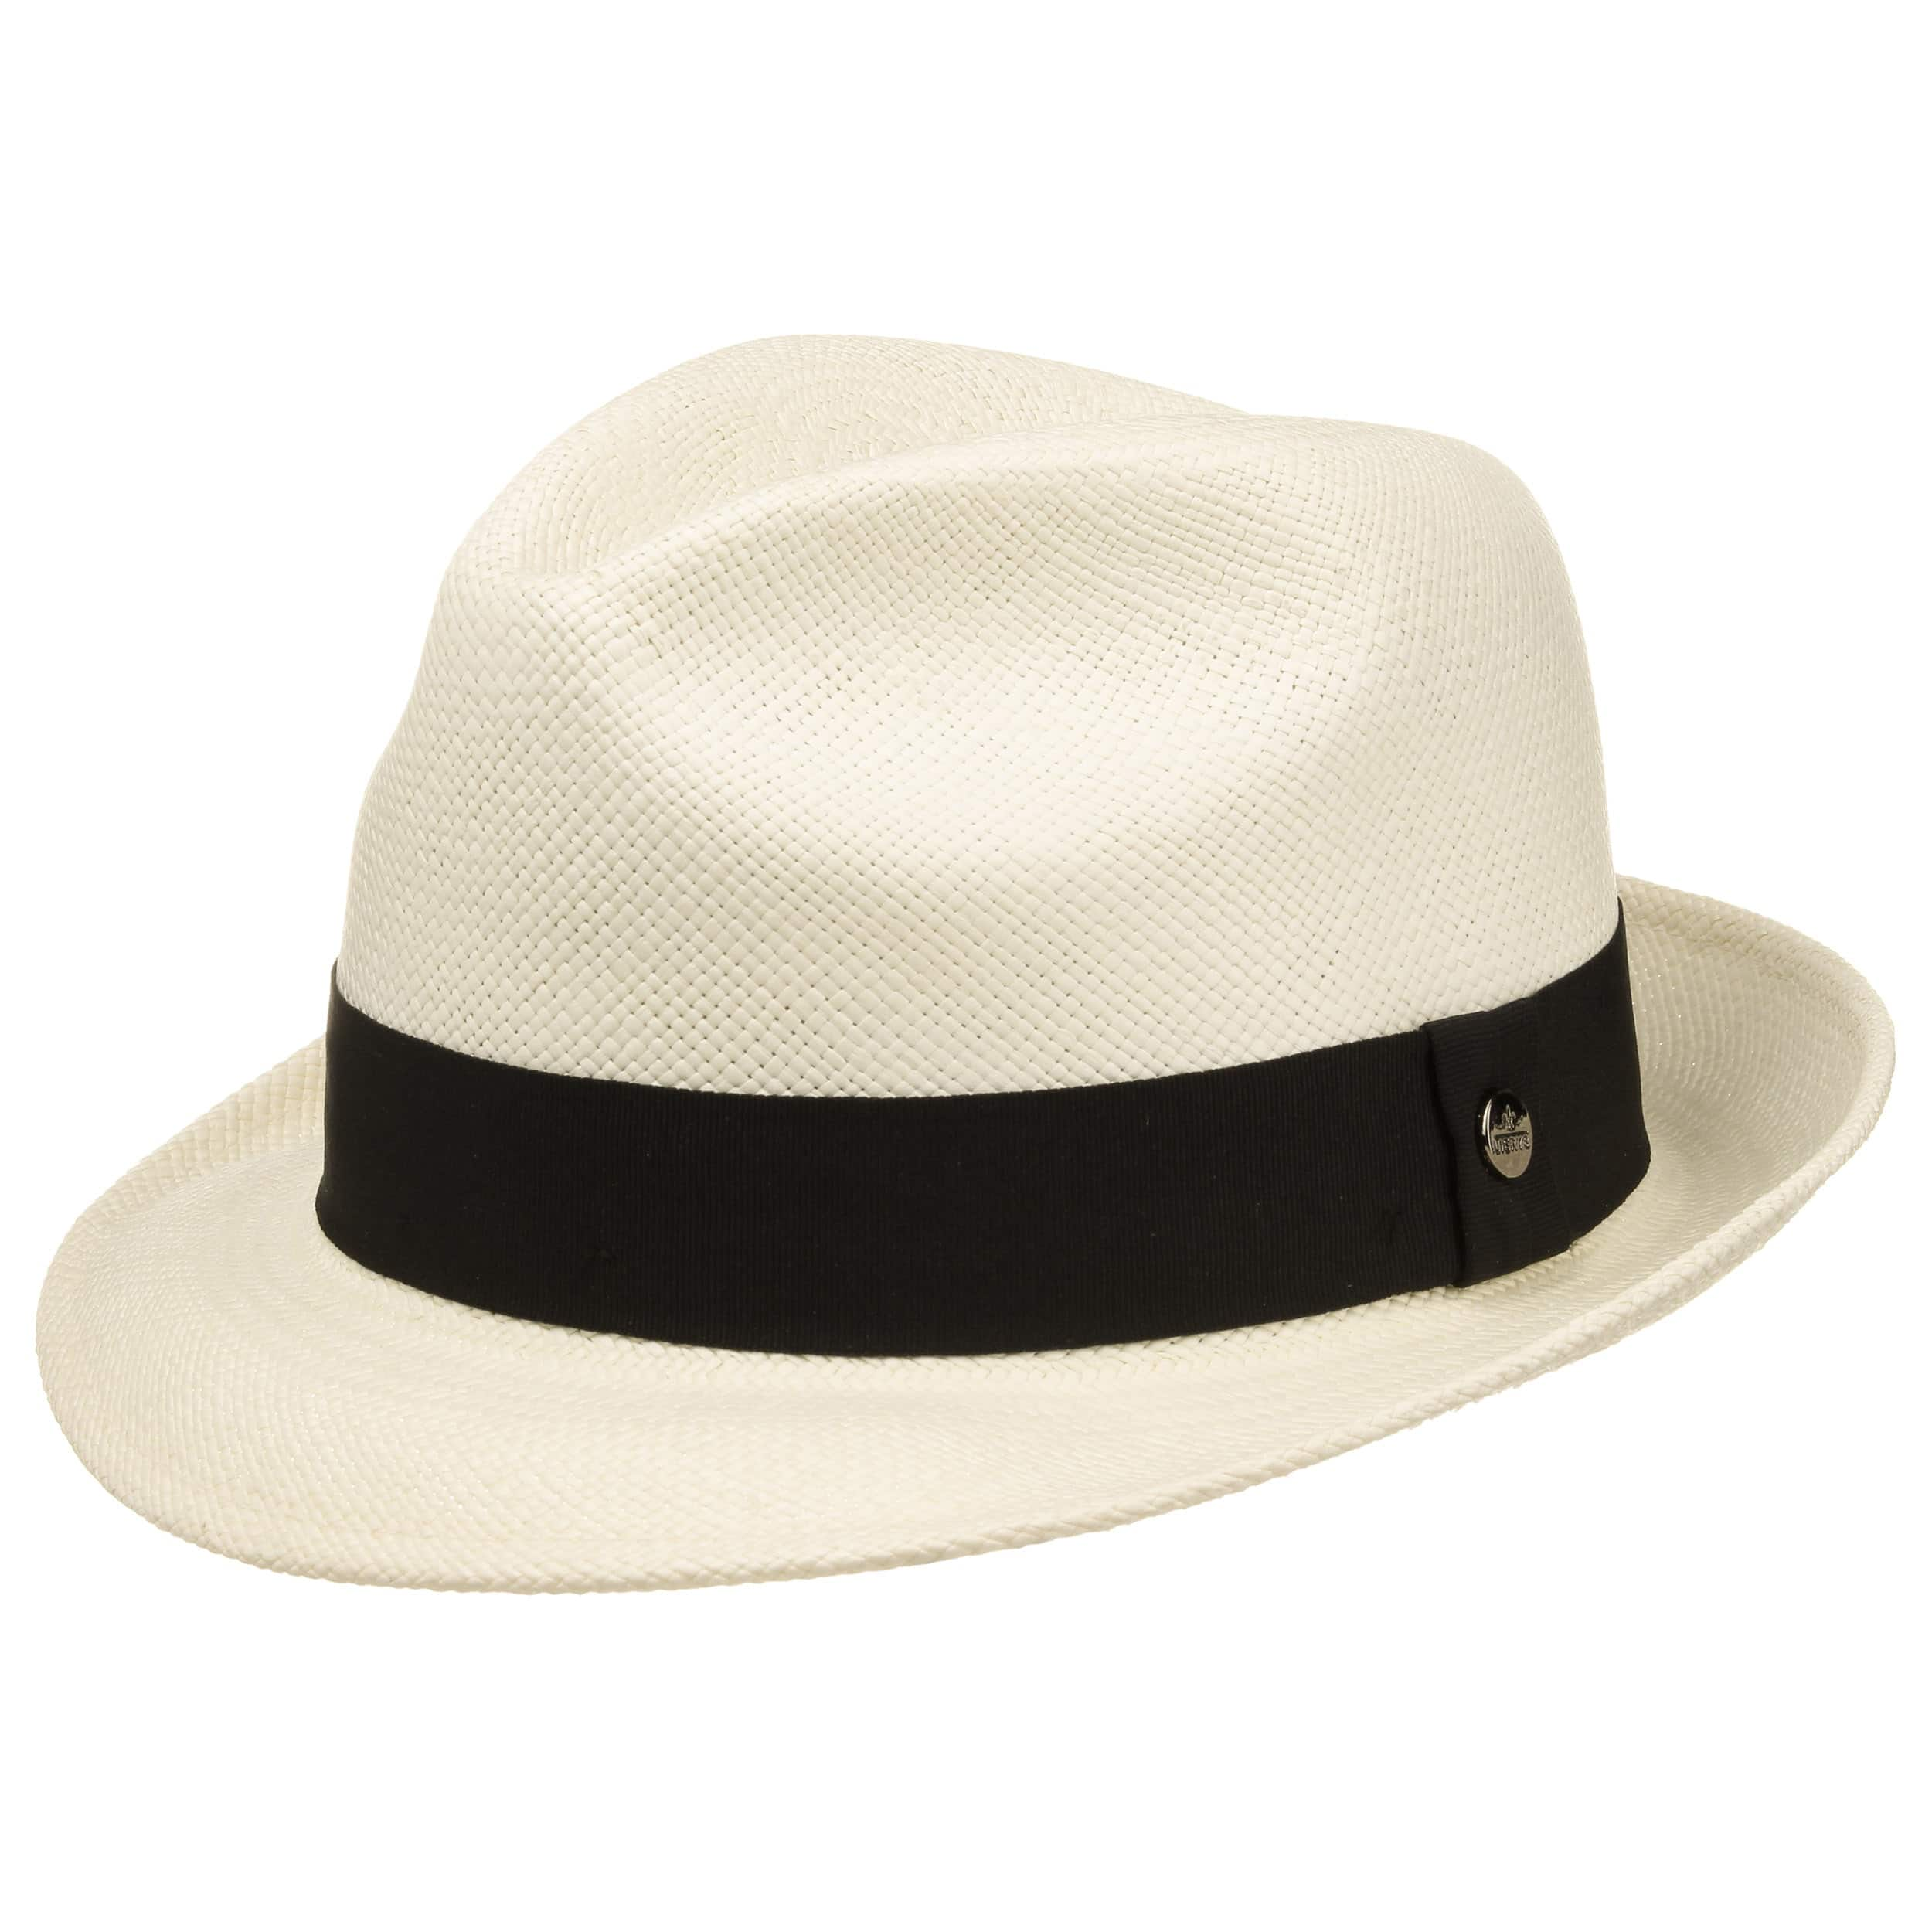 Eduardo Player Panama Hat. by Lierys a5807428b965